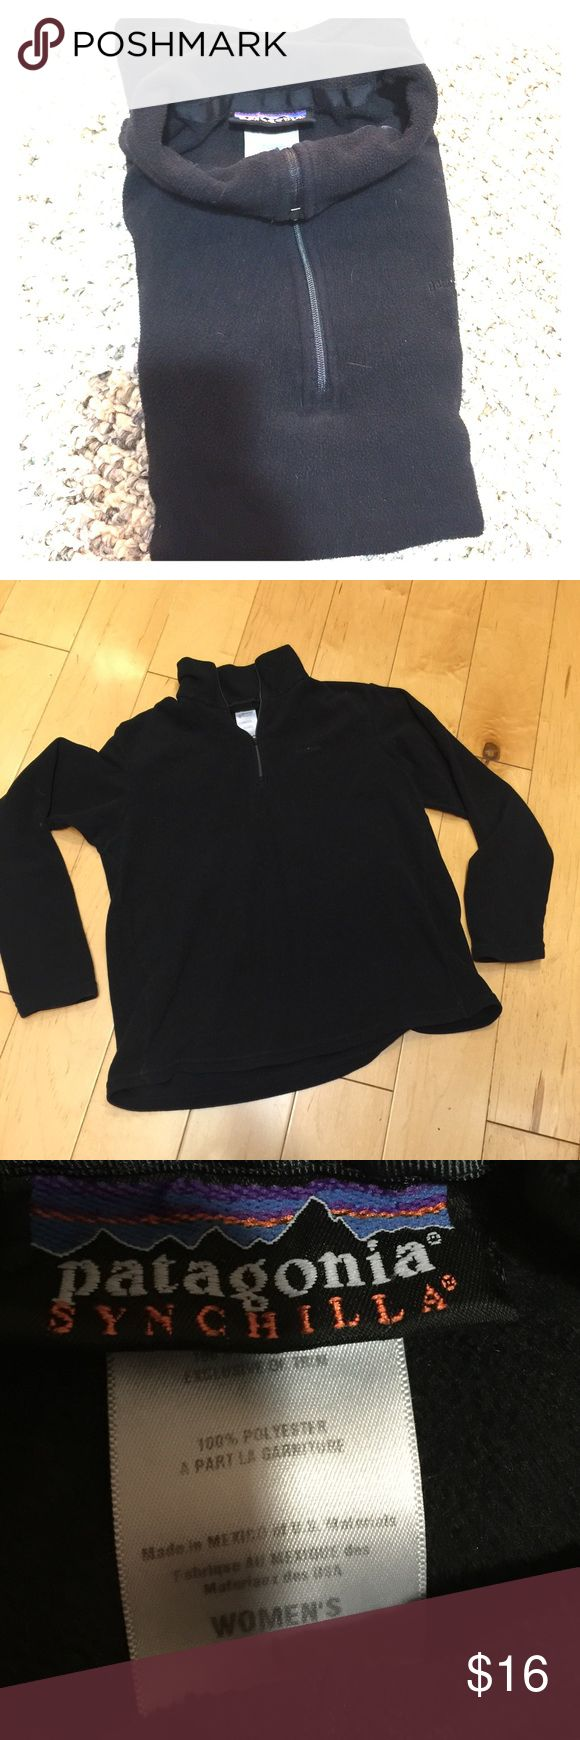 Patagonia Synchilla jacket half zip black L Patagonia Synchilla jacket. Half zipper. Black. Women's size L. Used in fair condition. No holes. Zipper works fine. Sleeves long, good for tall girls . Patagonia Tops Sweatshirts & Hoodies